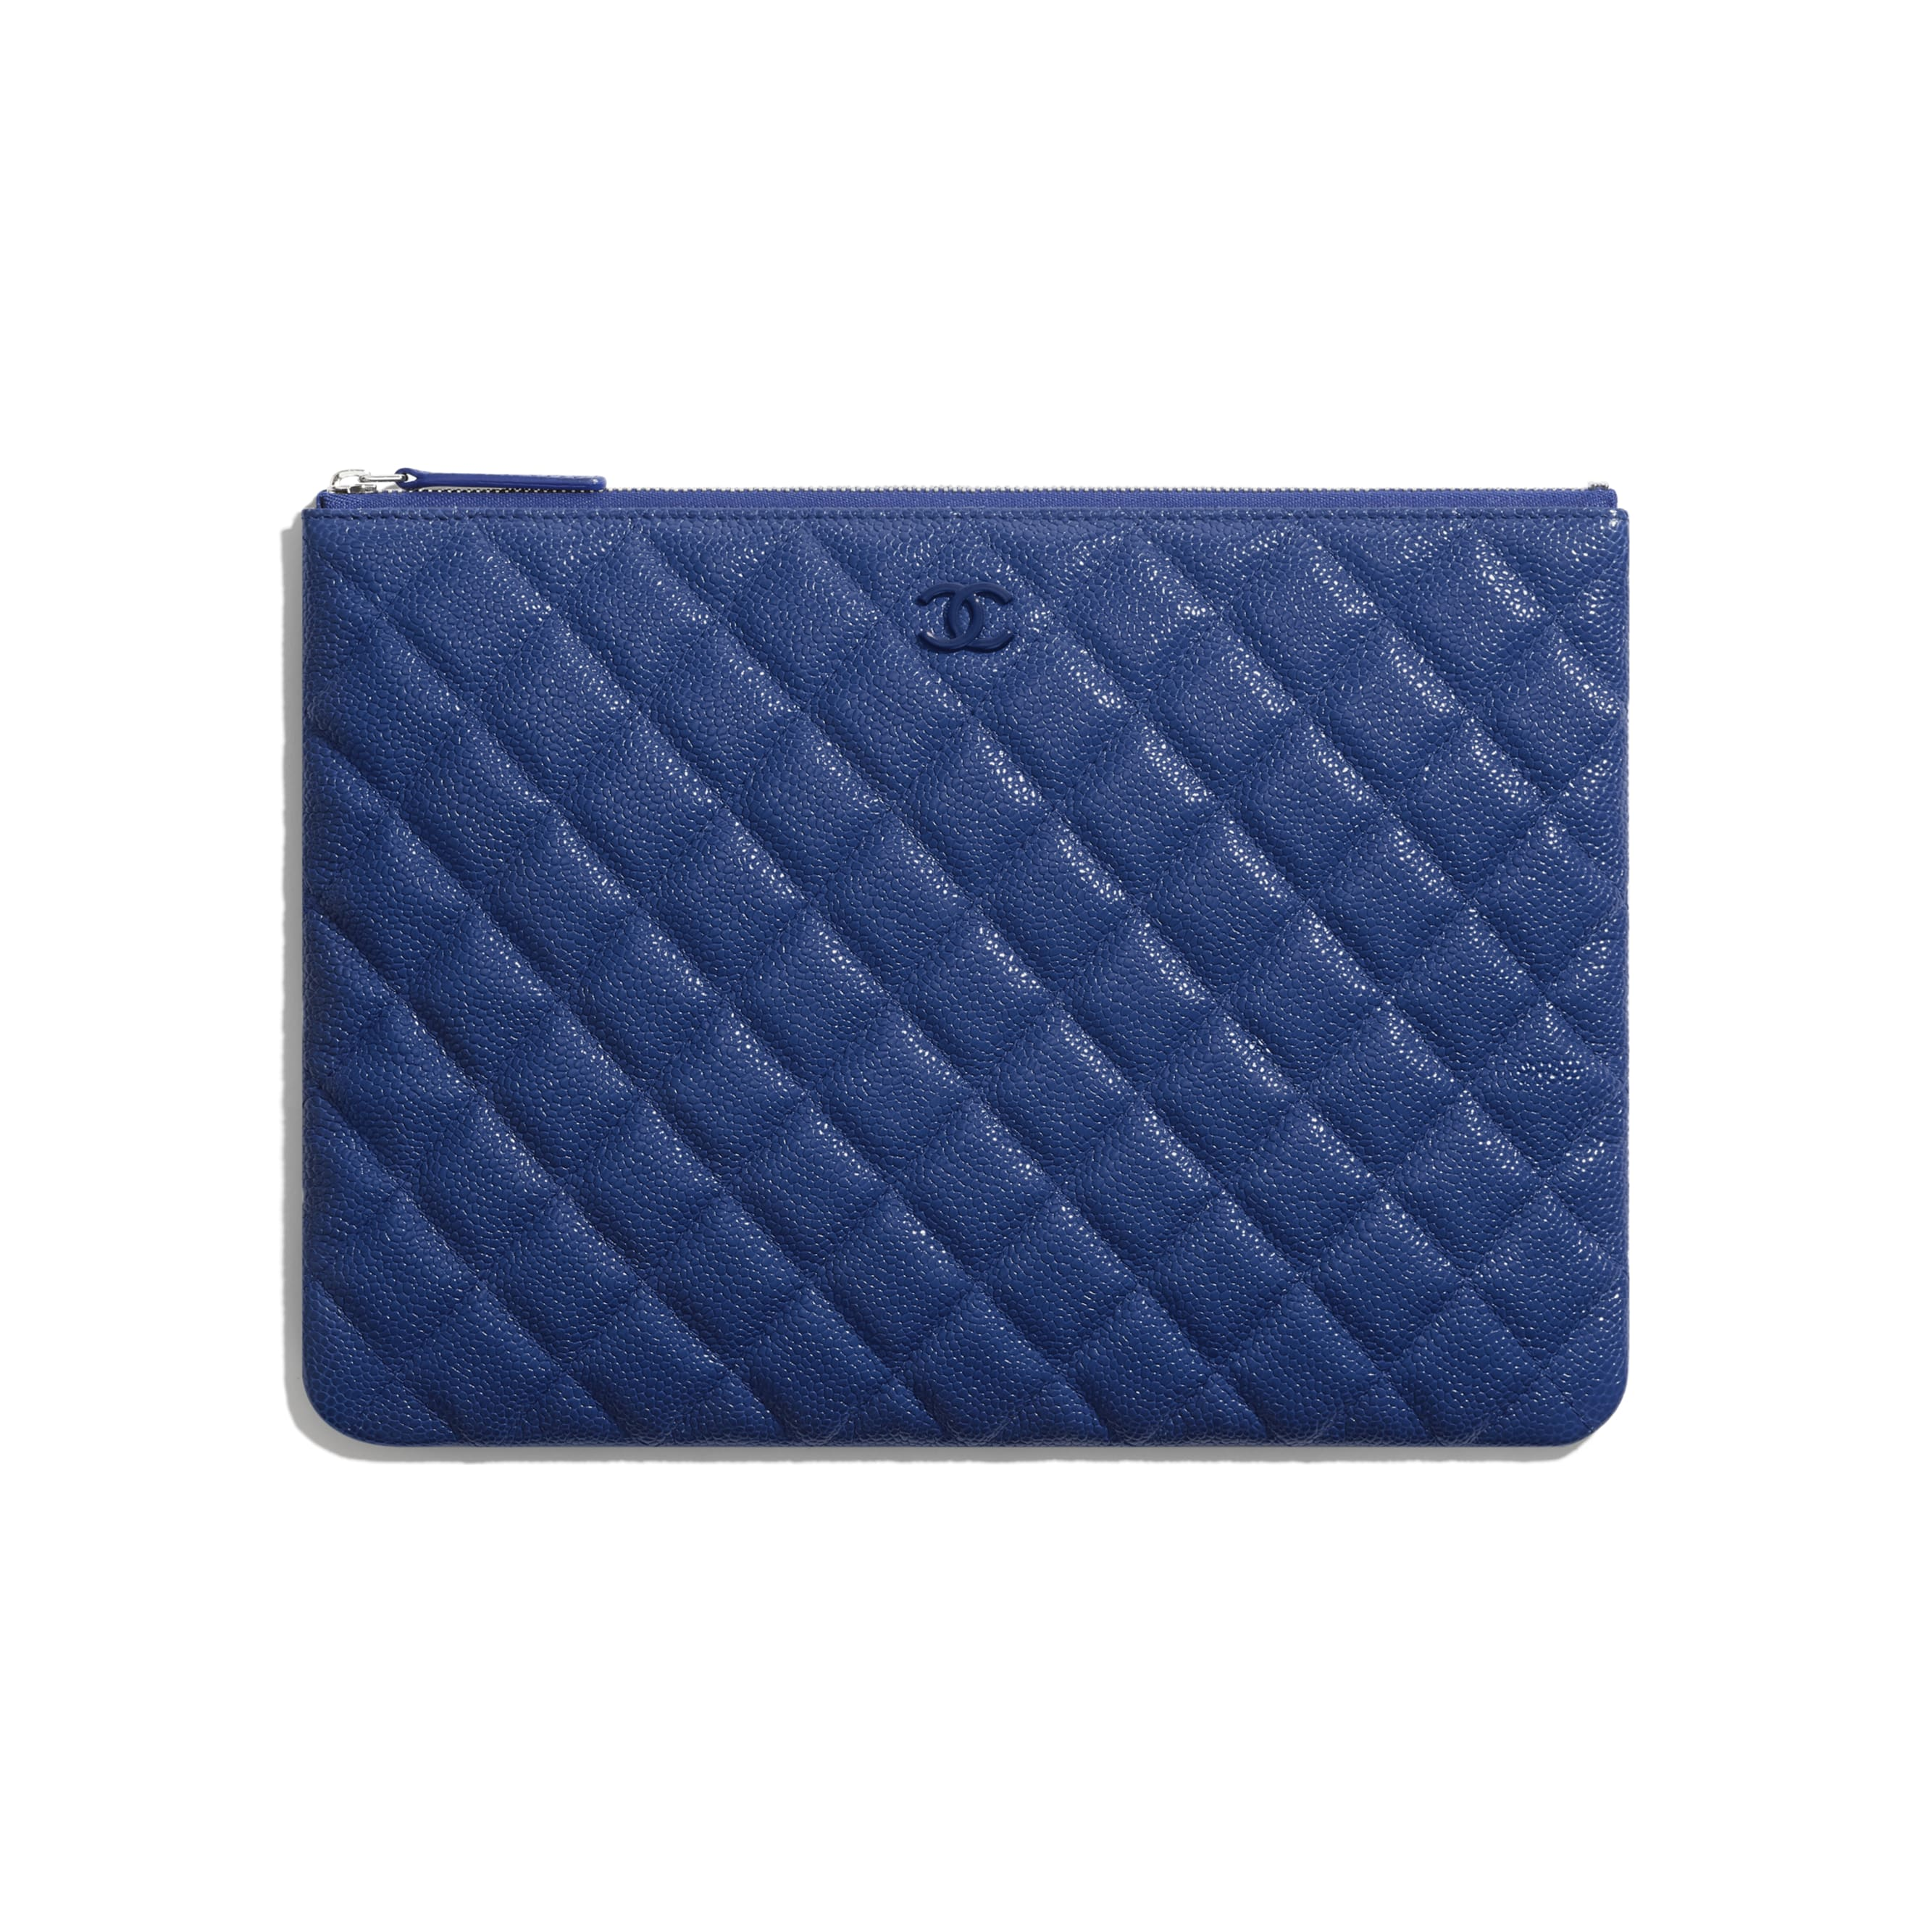 Pouch - Dark Blue - Grained Calfskin & Lacquered Metal - CHANEL - Default view - see standard sized version